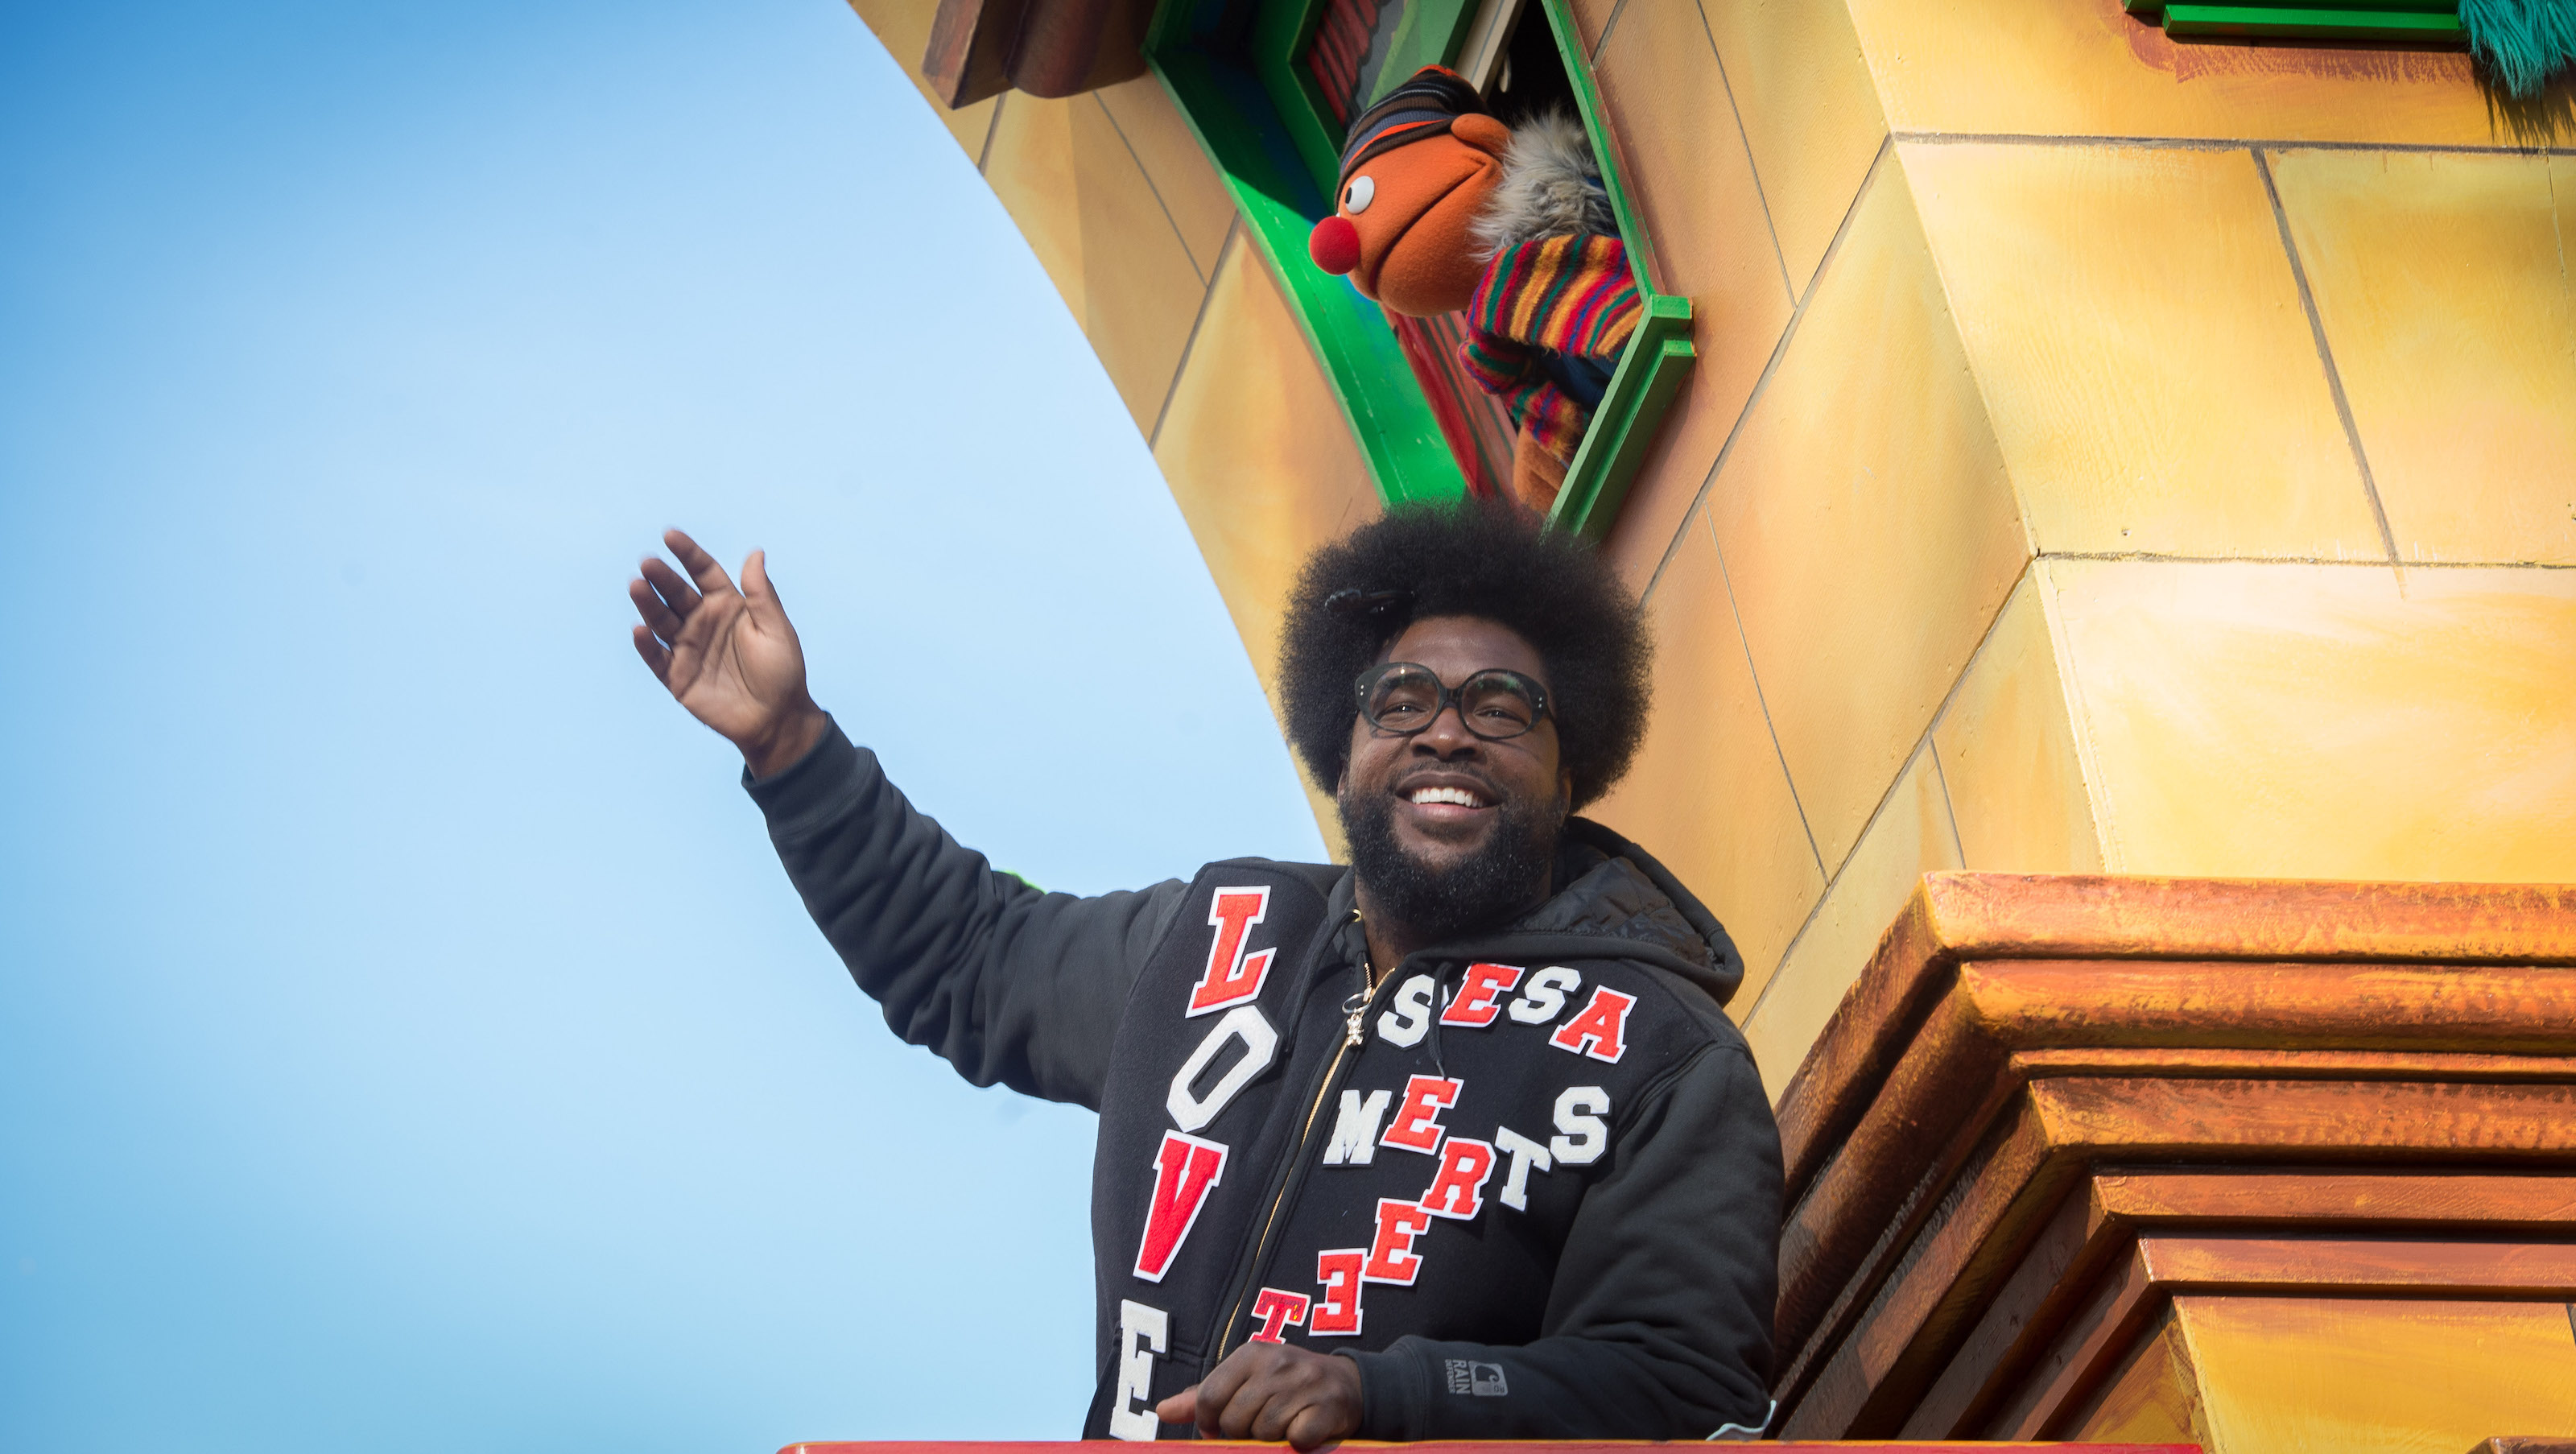 Questlove waves from a float during the Macy's Thanksgiving Day Parade, Thursday, Nov. 26, 2015, in New York. (AP Photo/Bryan R. Smith)